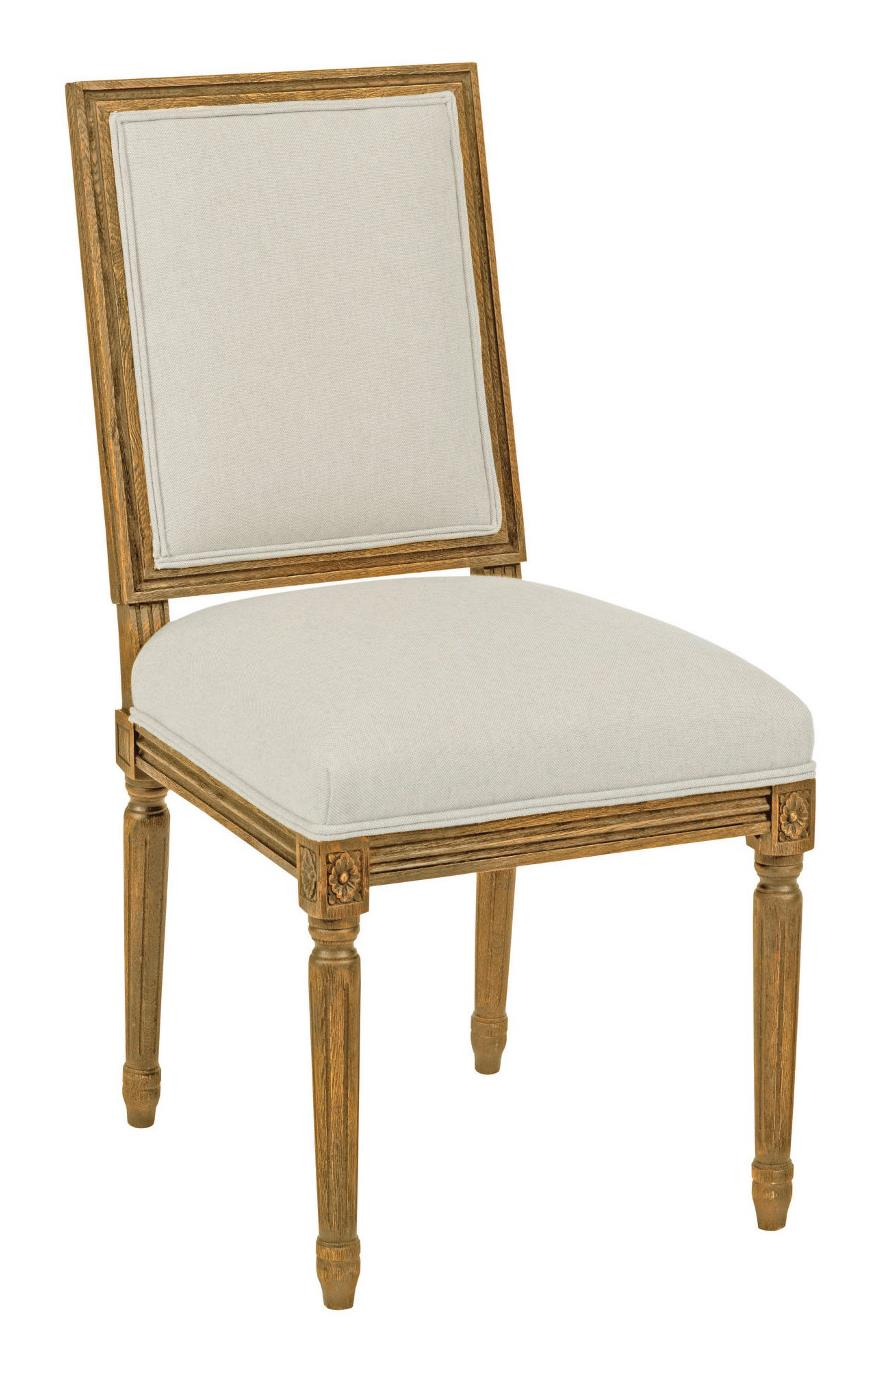 Kincaid Furniture Artisans Shoppe Accents French Side Chair - Item Number: 90-2414R